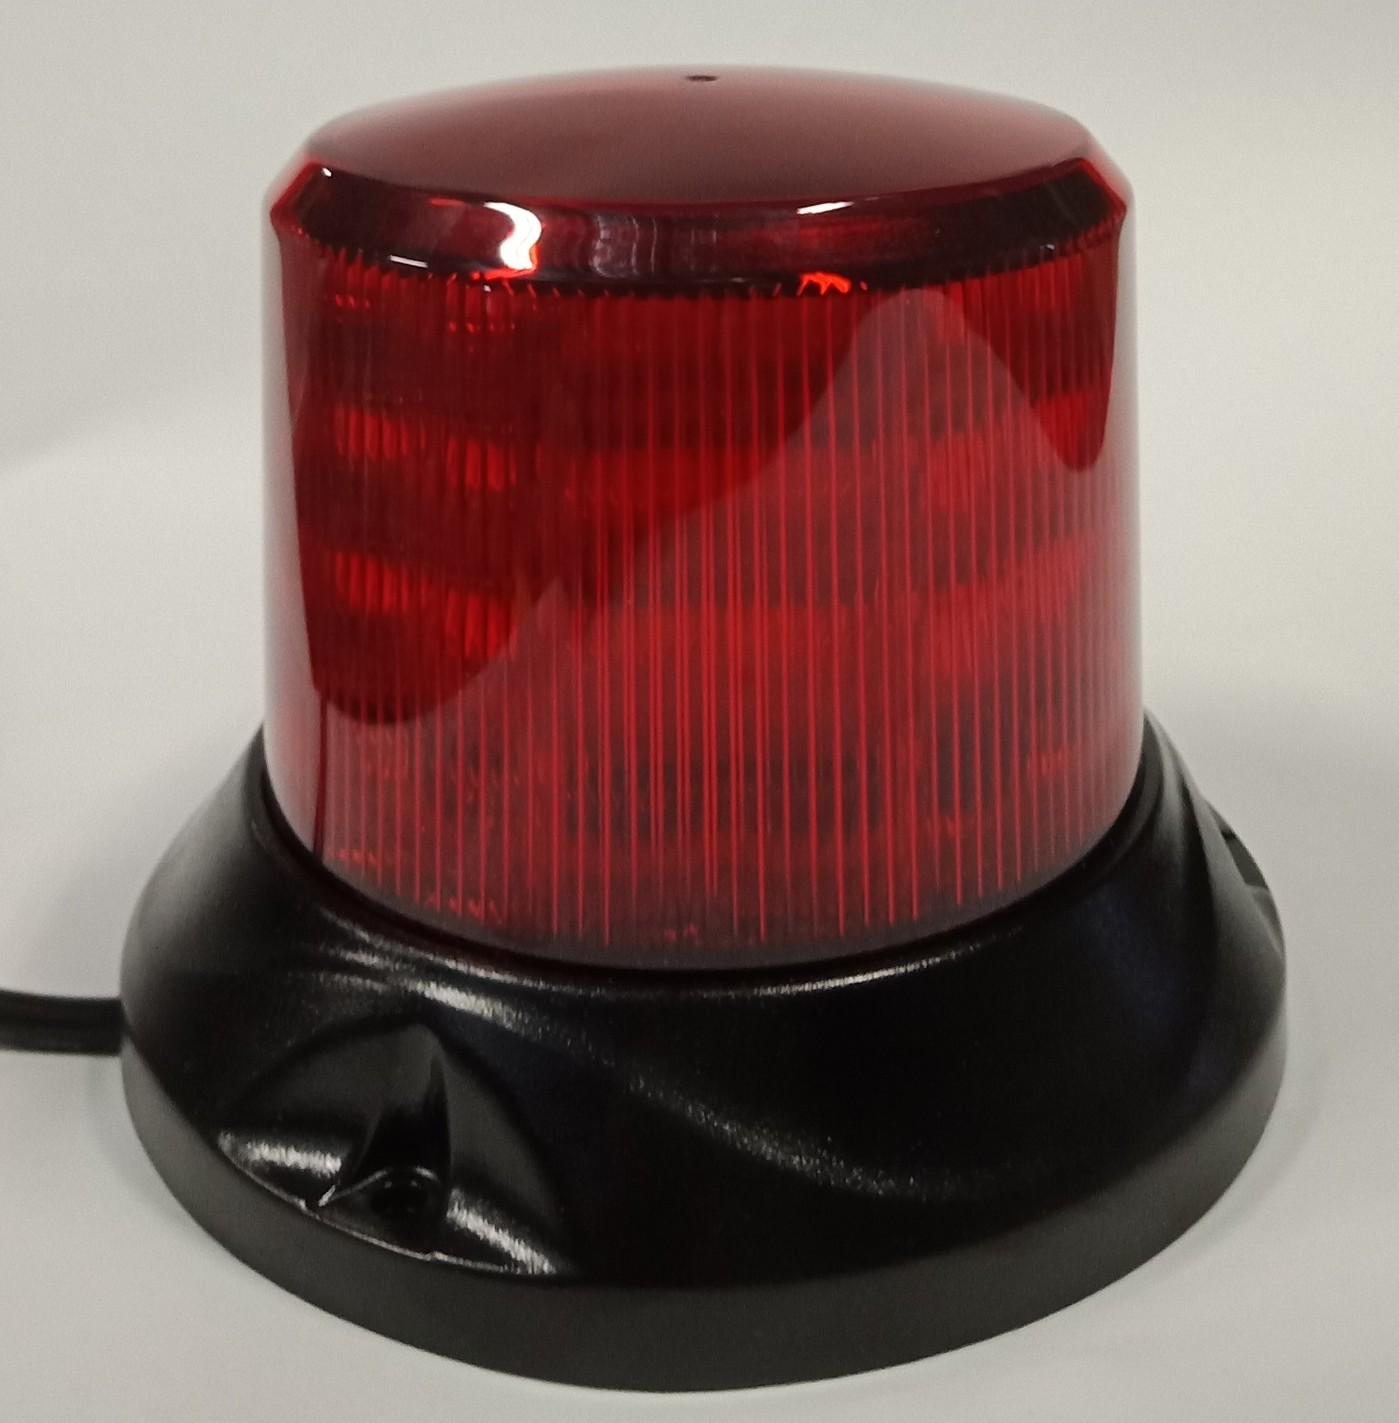 rb132r-red-led-safety-beacon-and-housing-revolver.png